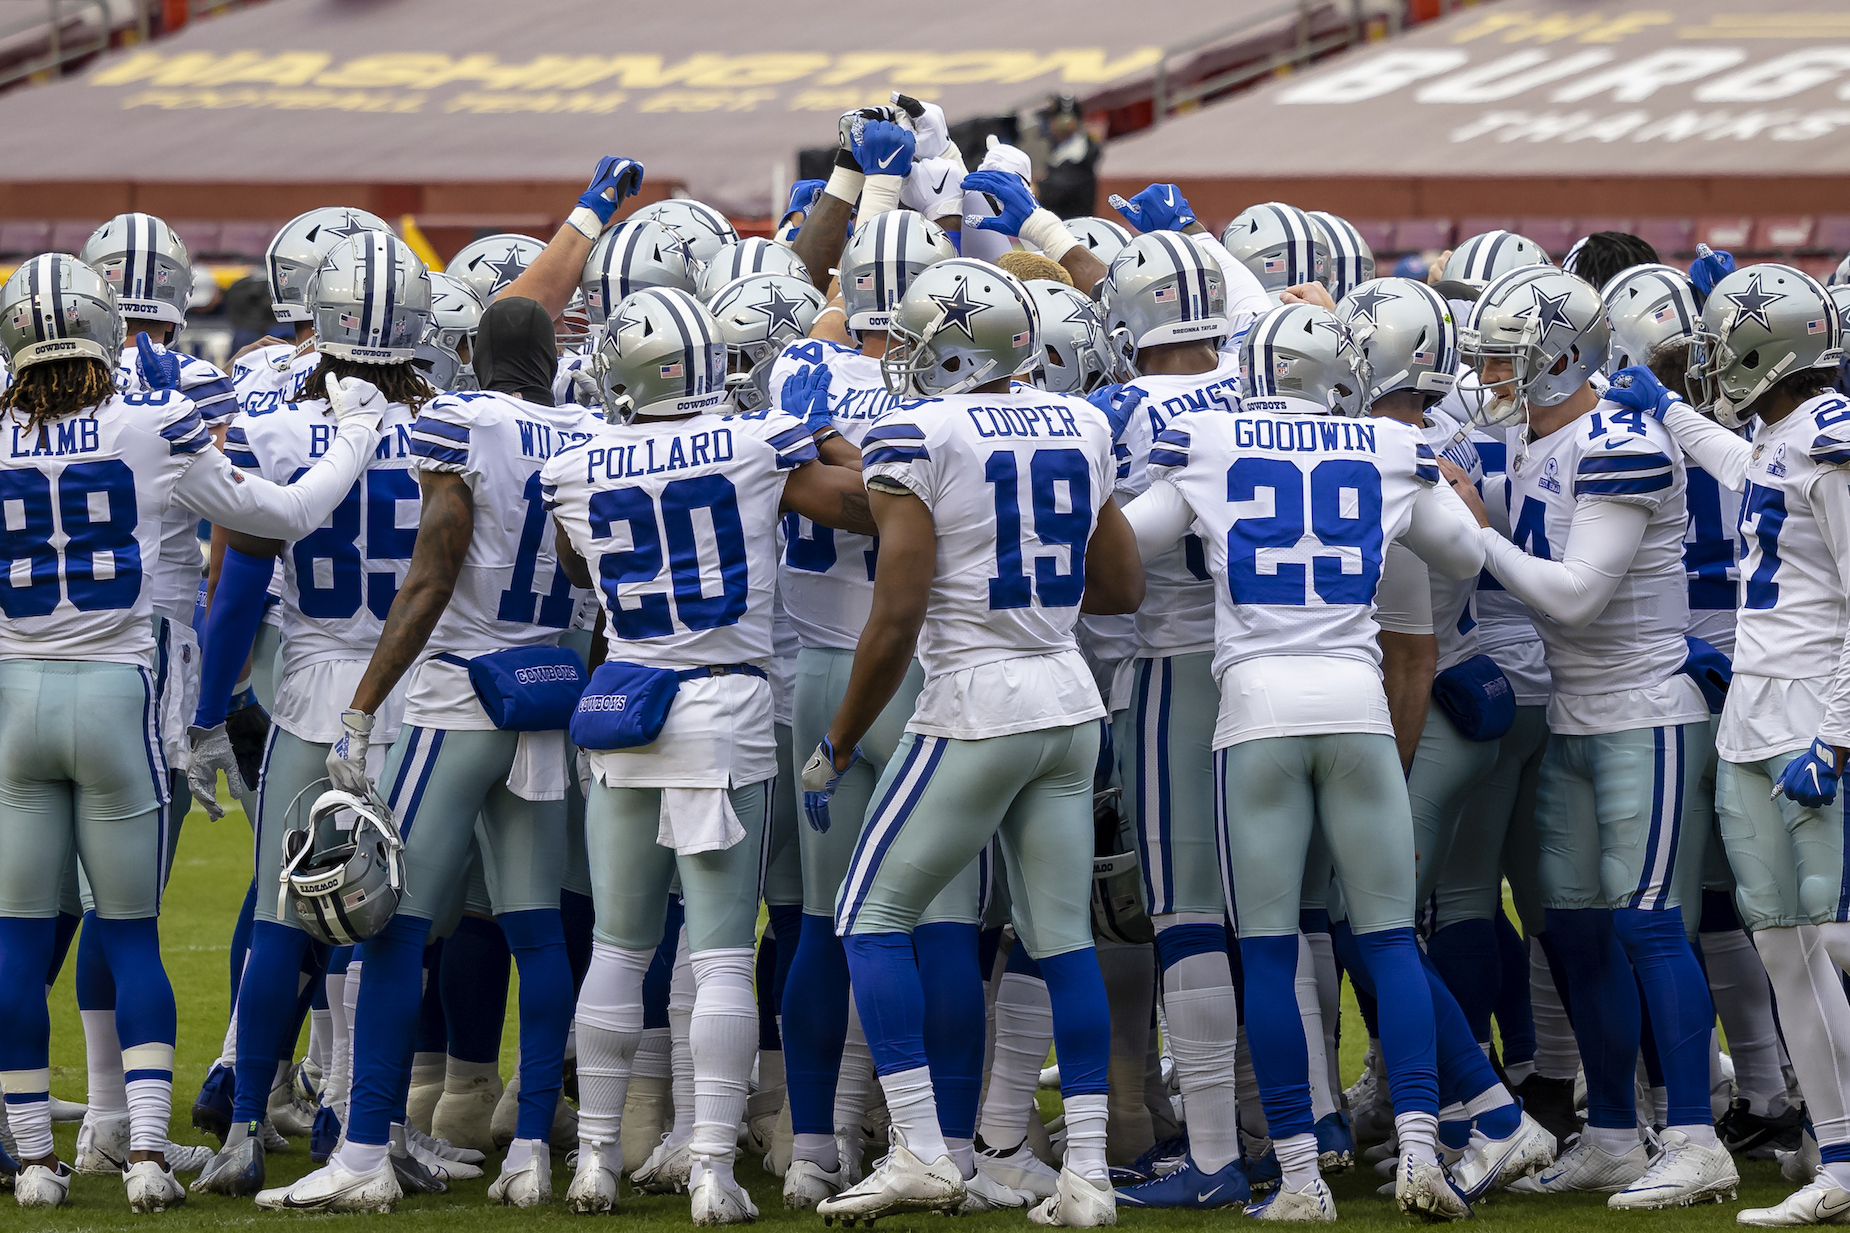 Just how bad was the worse season in Dallas Cowboys history?